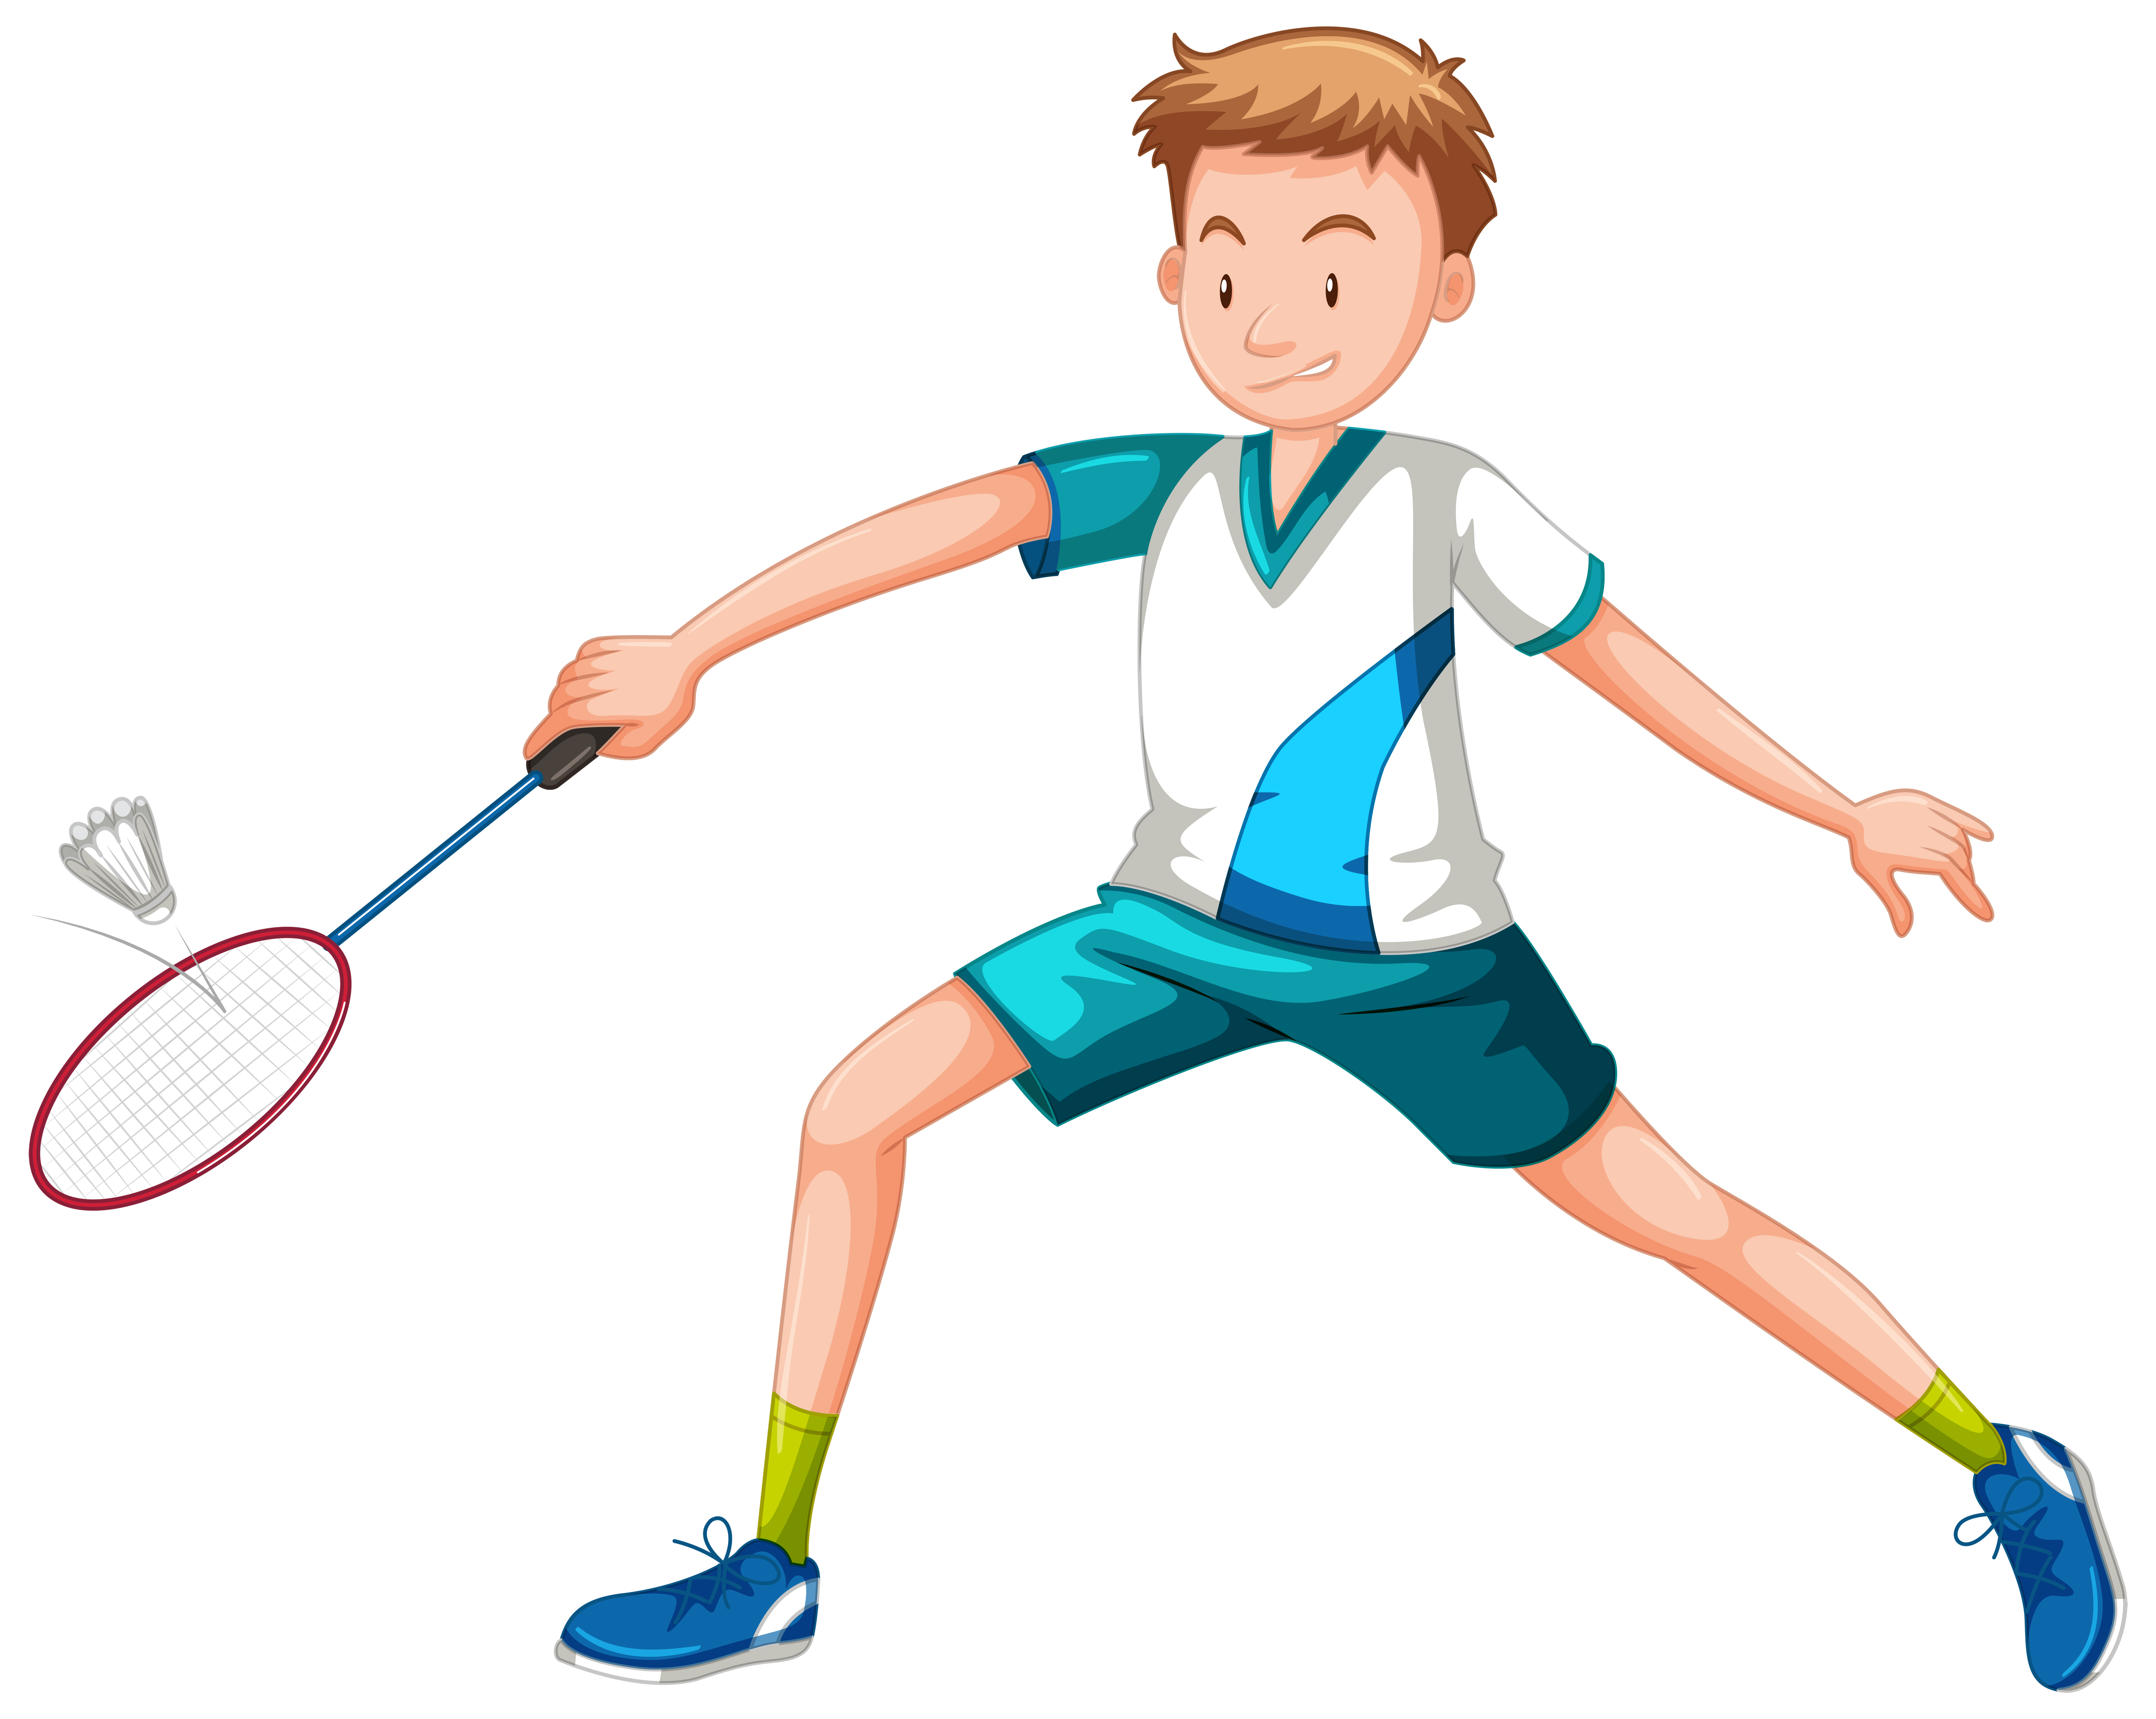 Man Playing Tennis White Background Download Free Vectors Clipart Graphics Vector Art